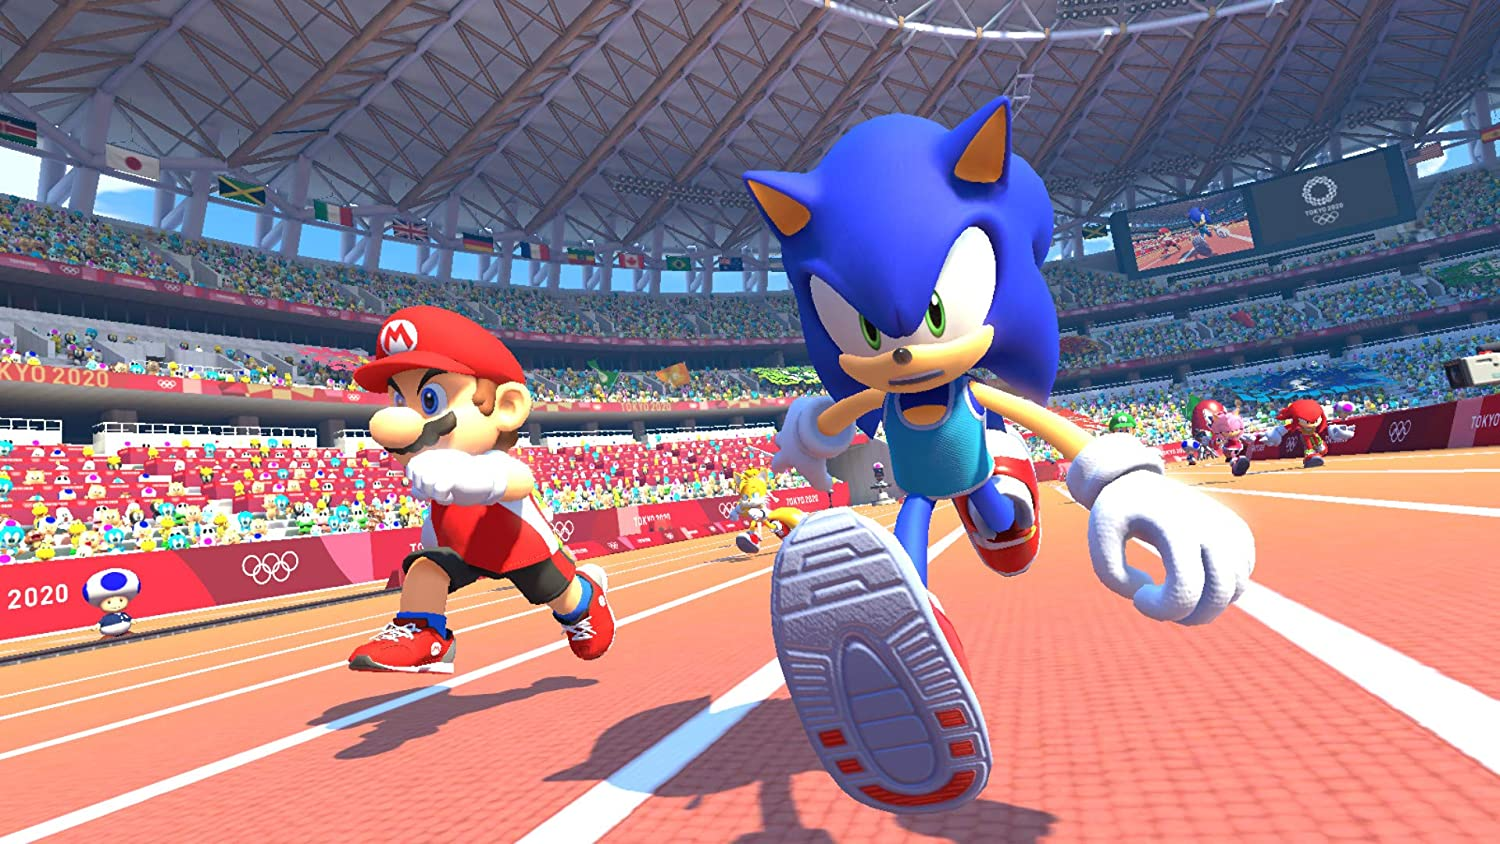 Mario & Sonic at the Olympic Games: Tokyo 2020 for Nintendo Switch USA: Amazon.es: Mario & Sonic: Cine y Series TV